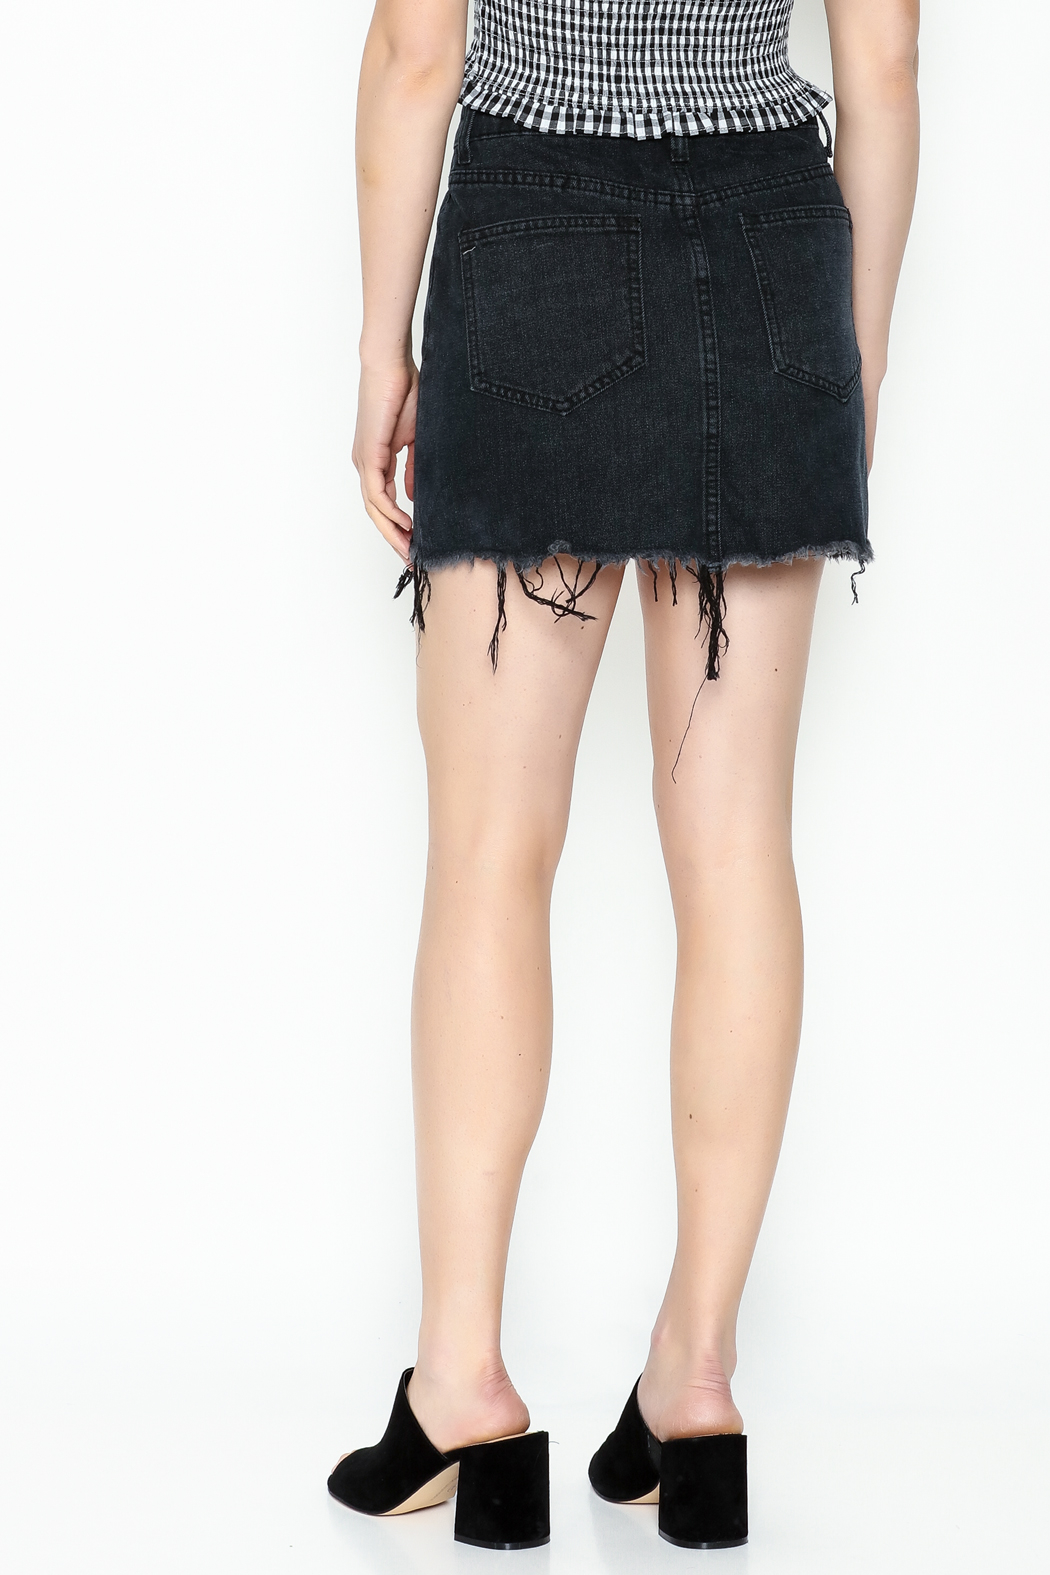 Signature 8 Black Embroidered Skirt - Back Cropped Image